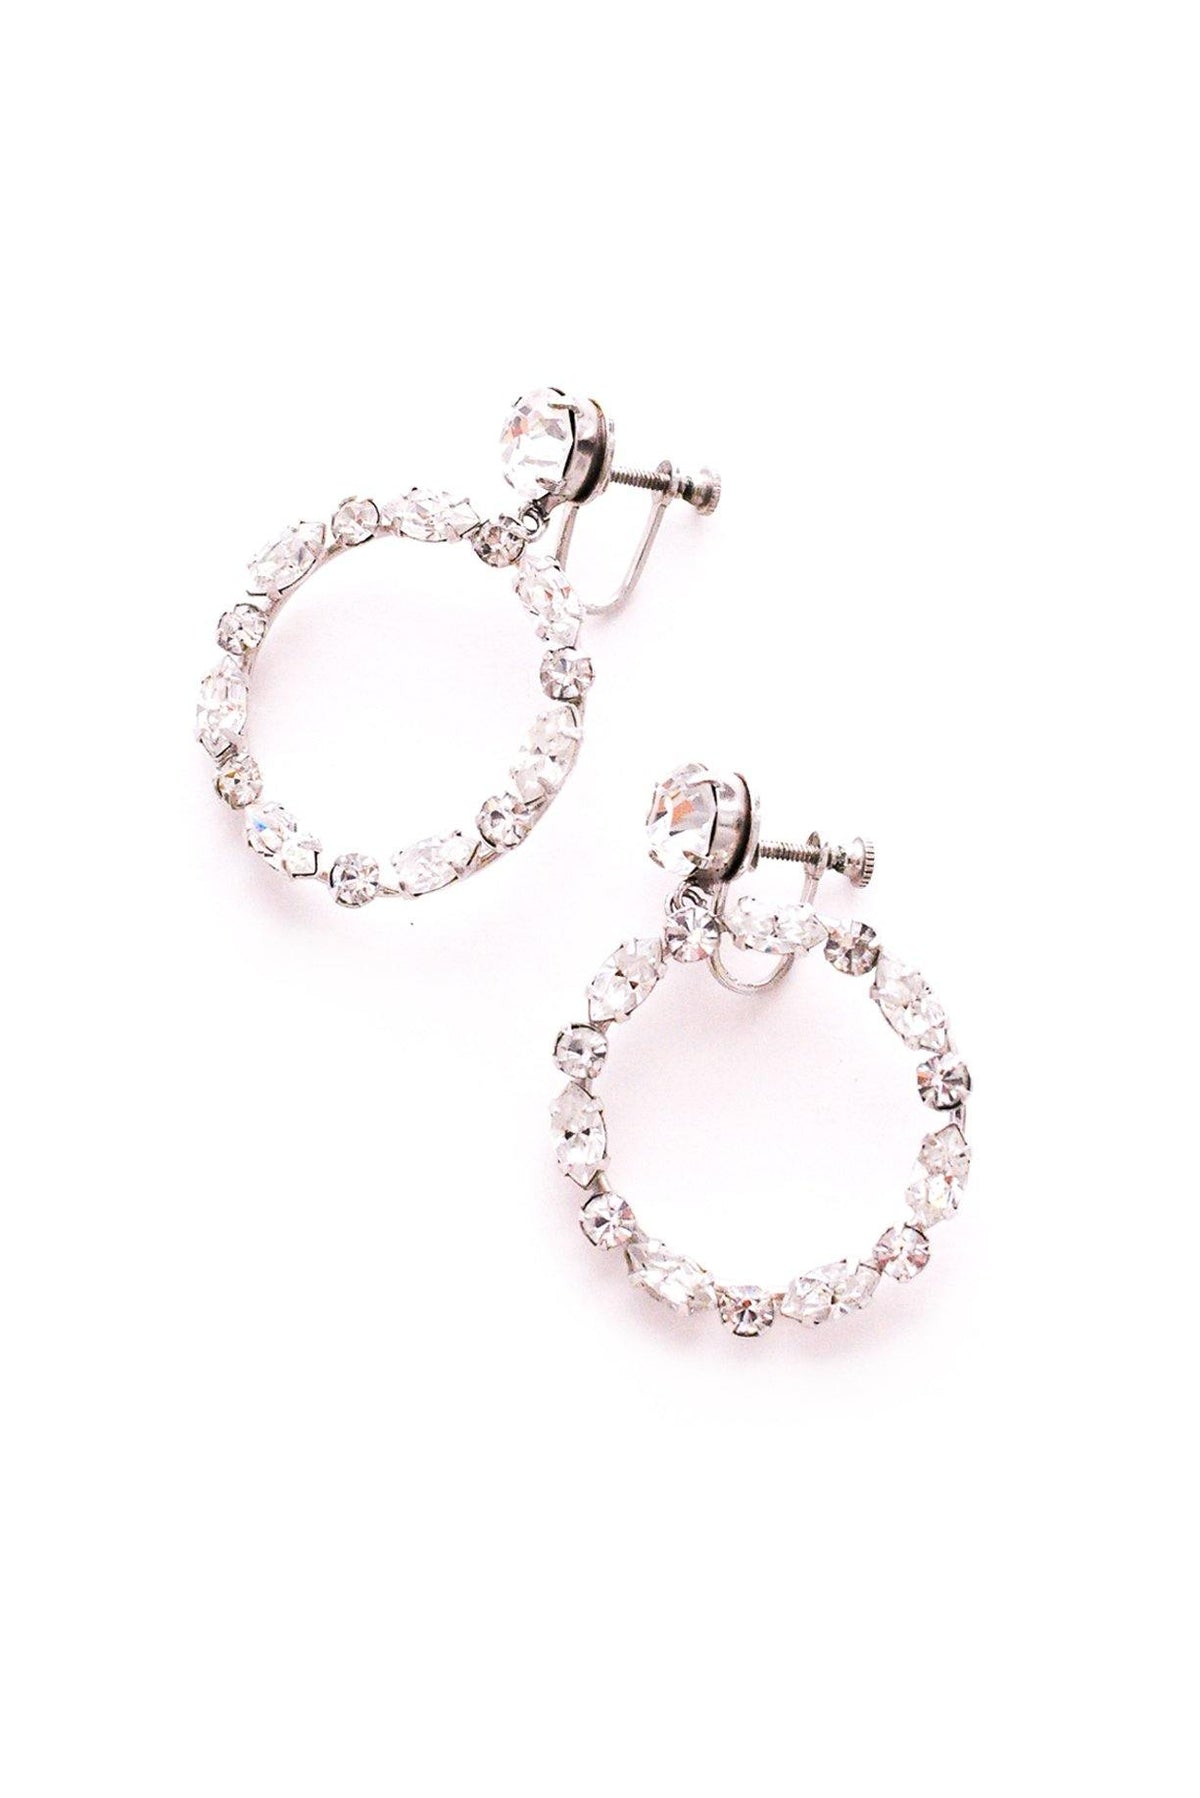 Vintage rhinestone hoop earrings from Sweet & Spark.